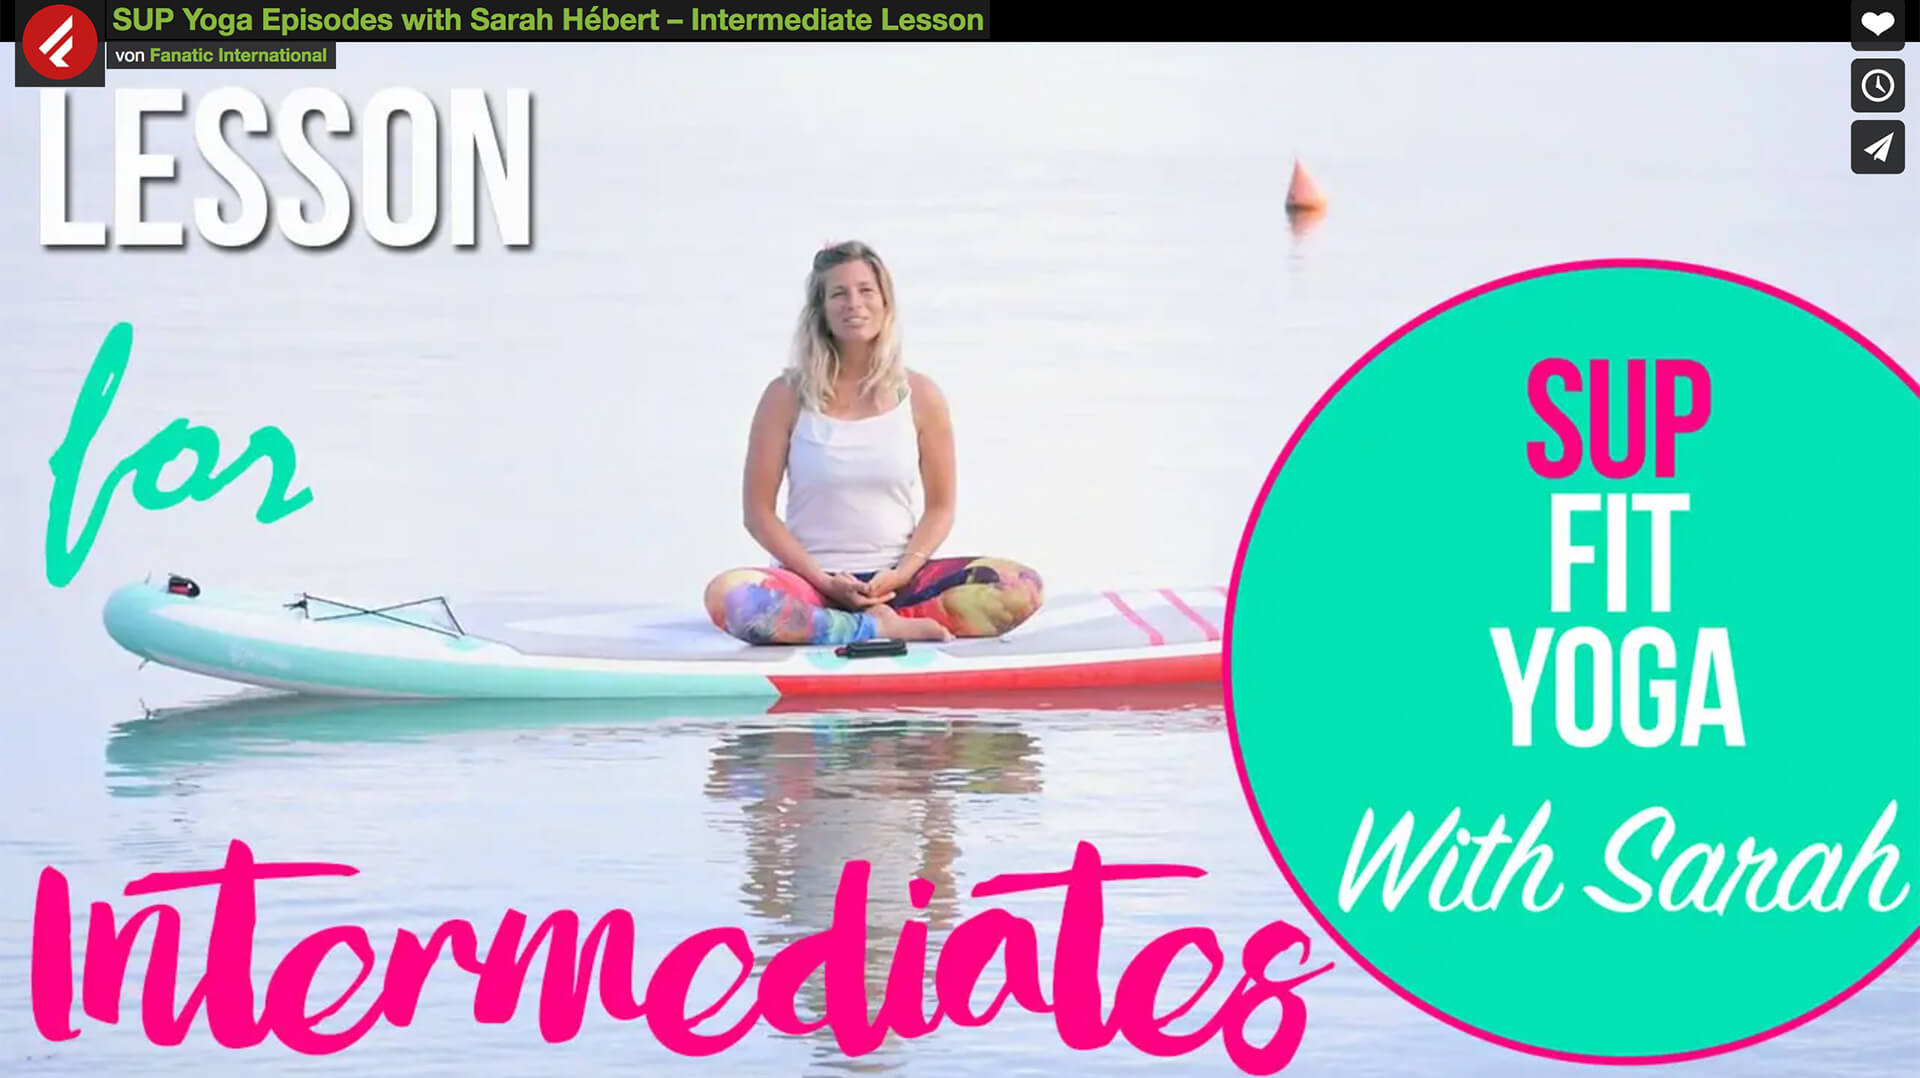 Fanatic SUP Yoga with Sarah Part 5